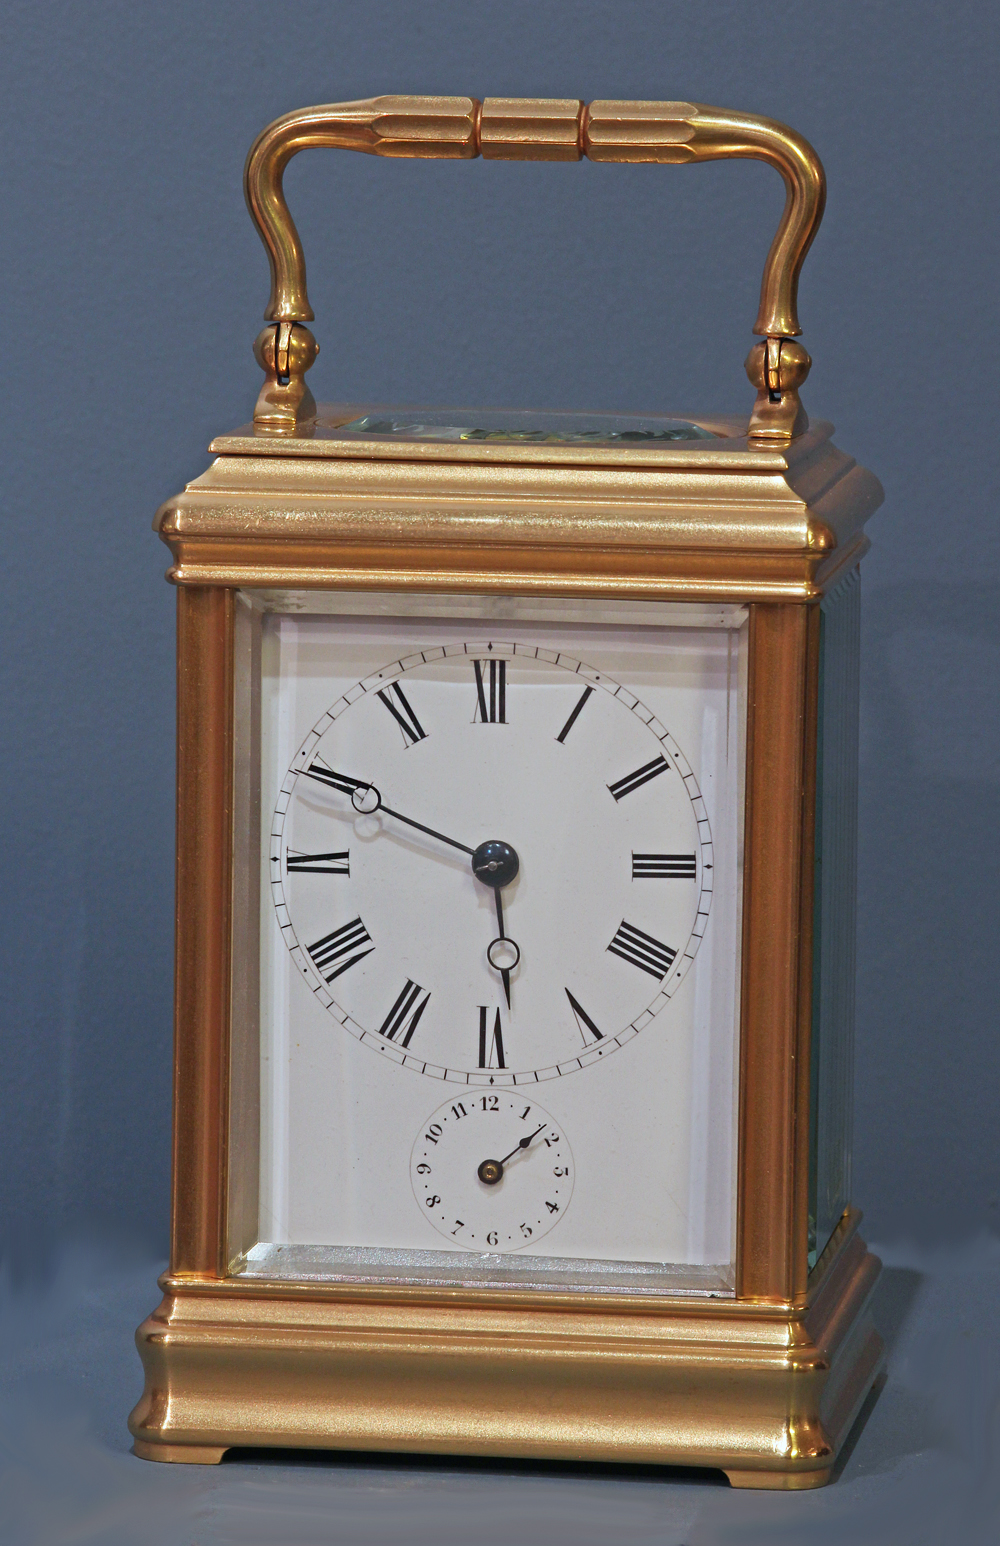 c.1895 French Carriage Clock